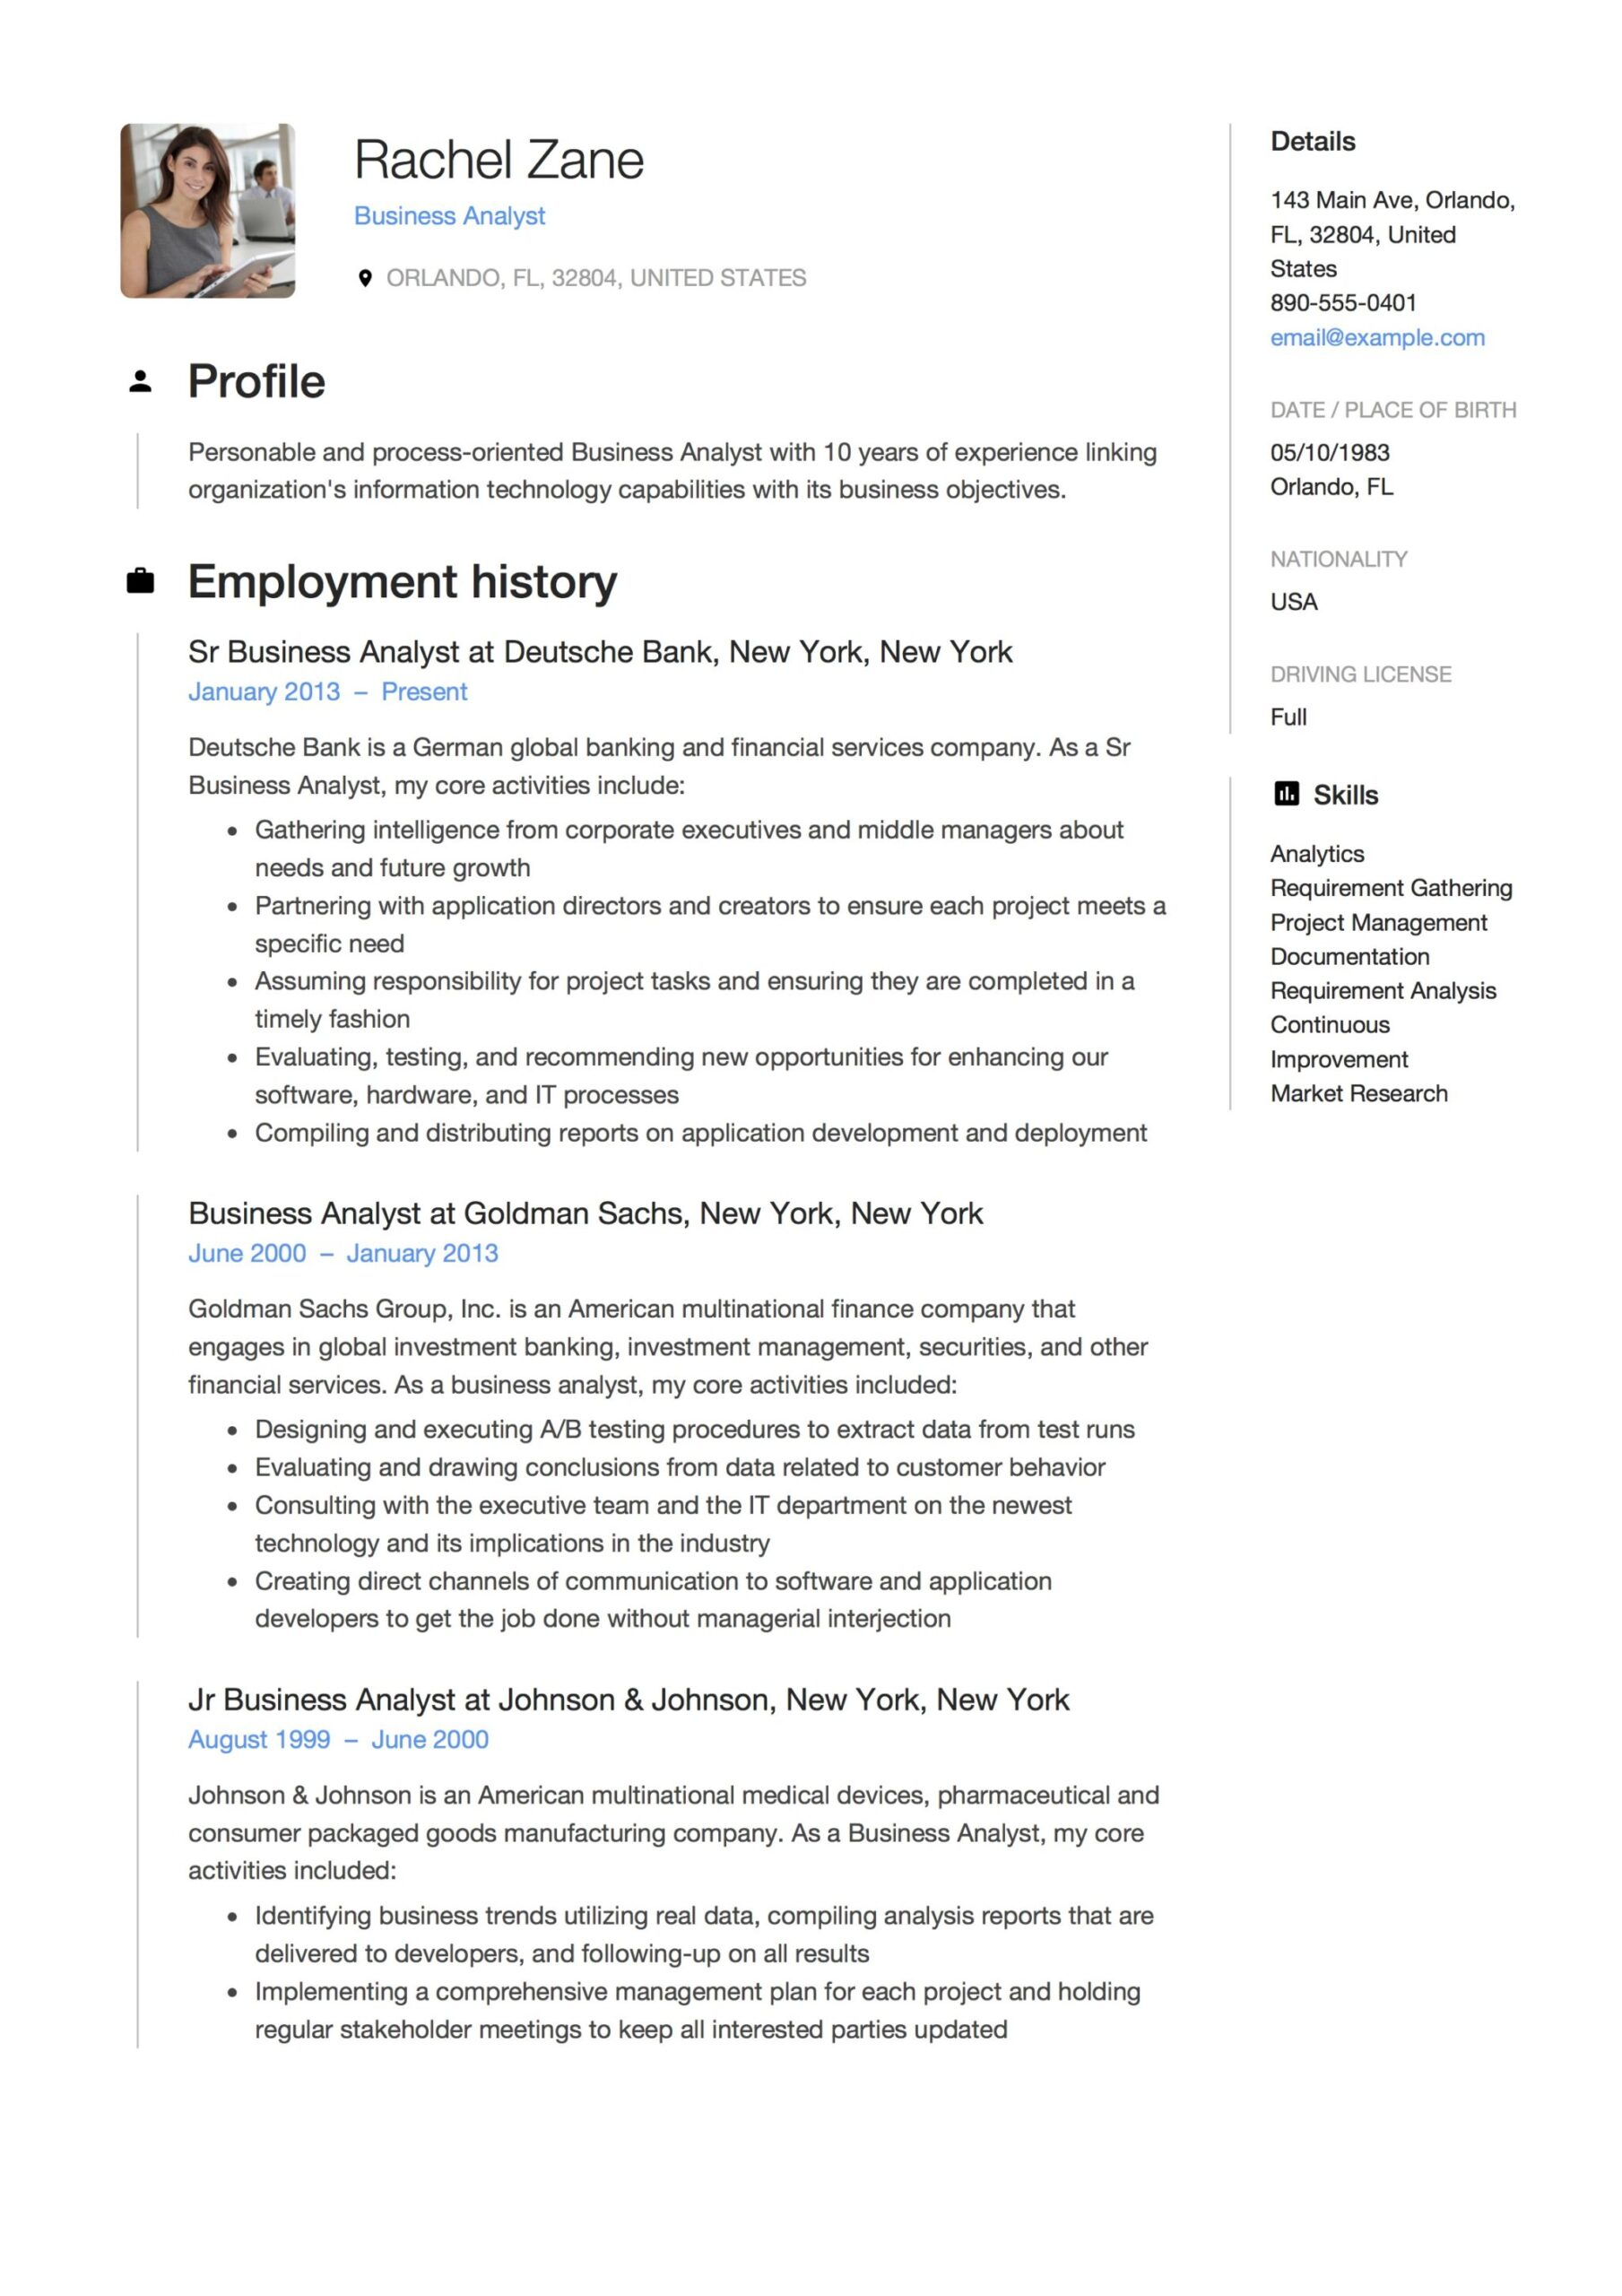 business analyst resume guide templates pdf free downloads examples culverhouse template Resume Analyst Resume Examples